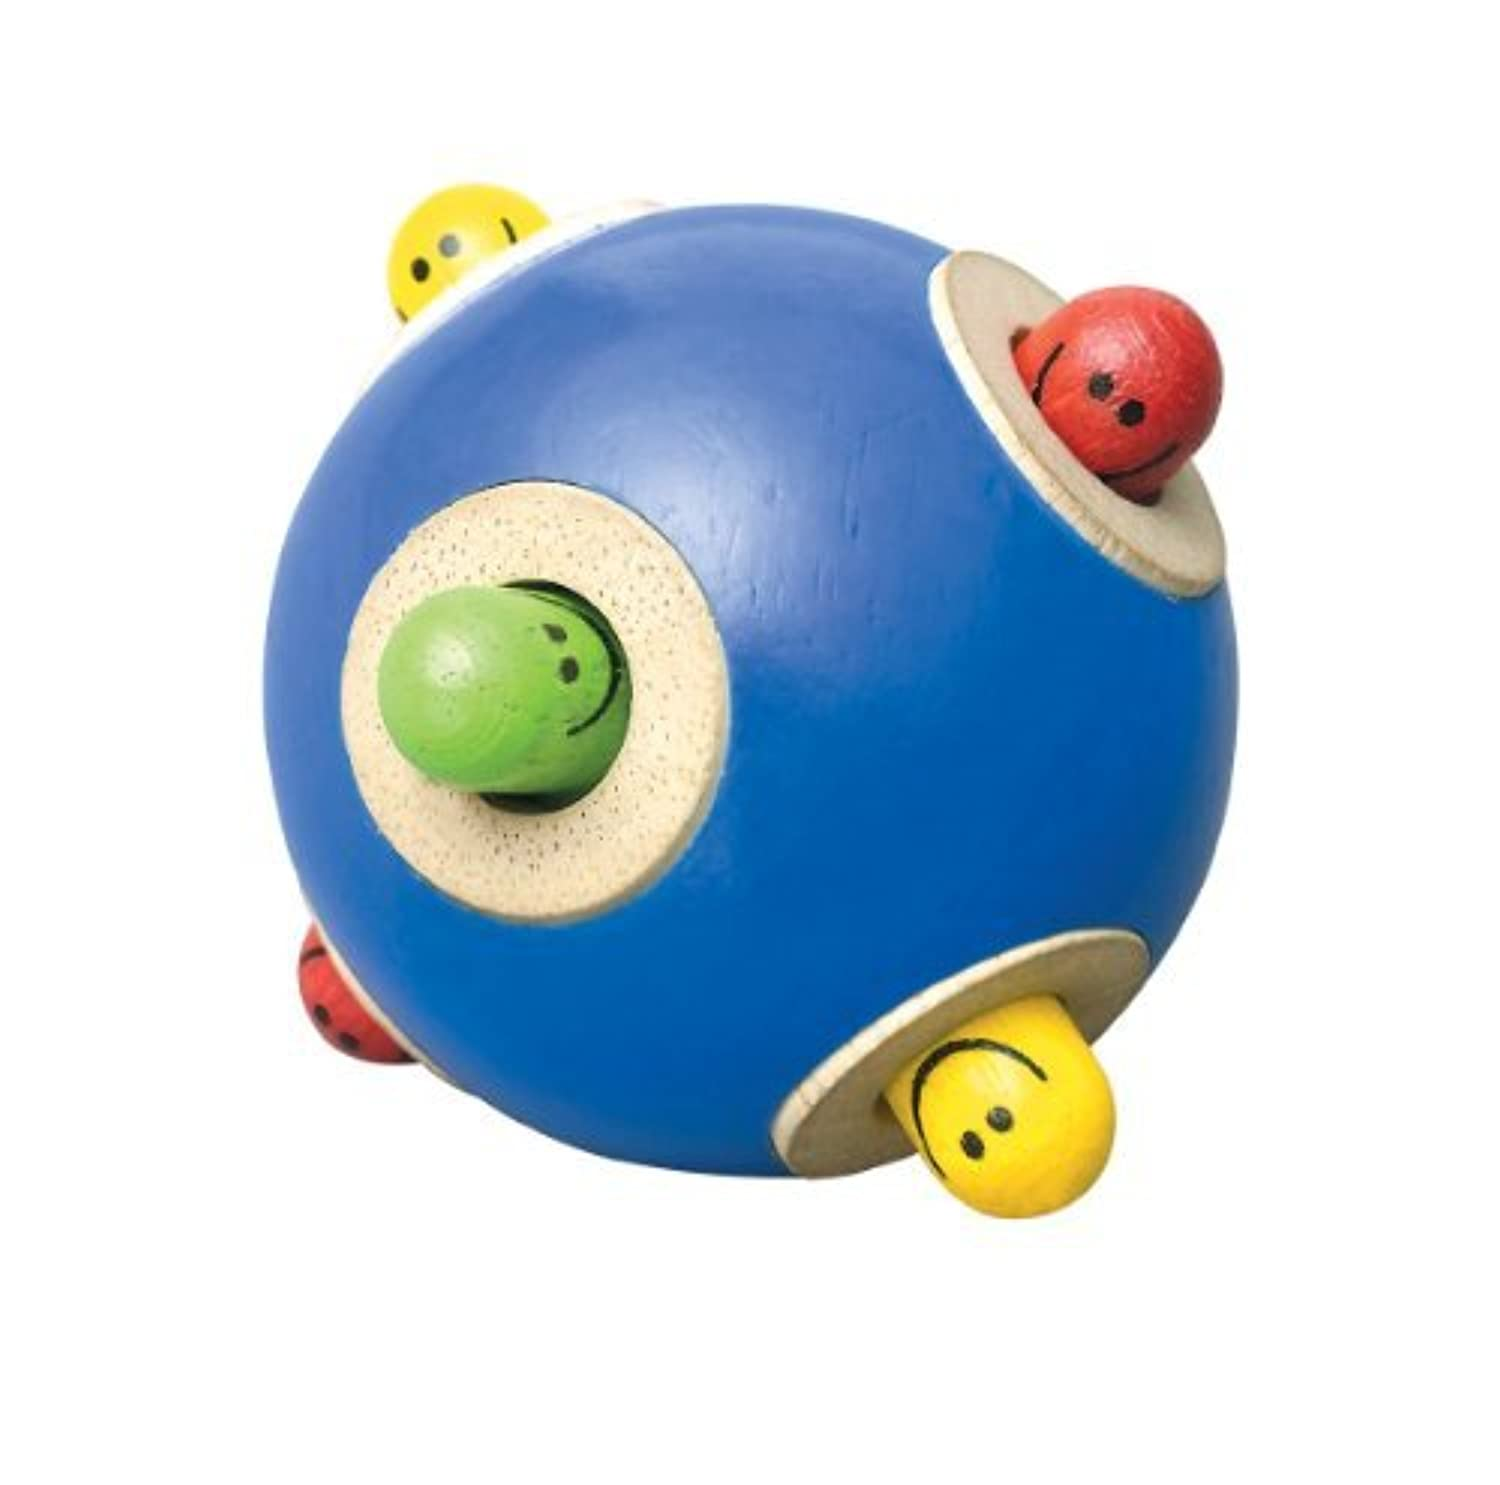 Wonderworld Peek-a-boo Ball Kids, Infant, Child, Baby Products